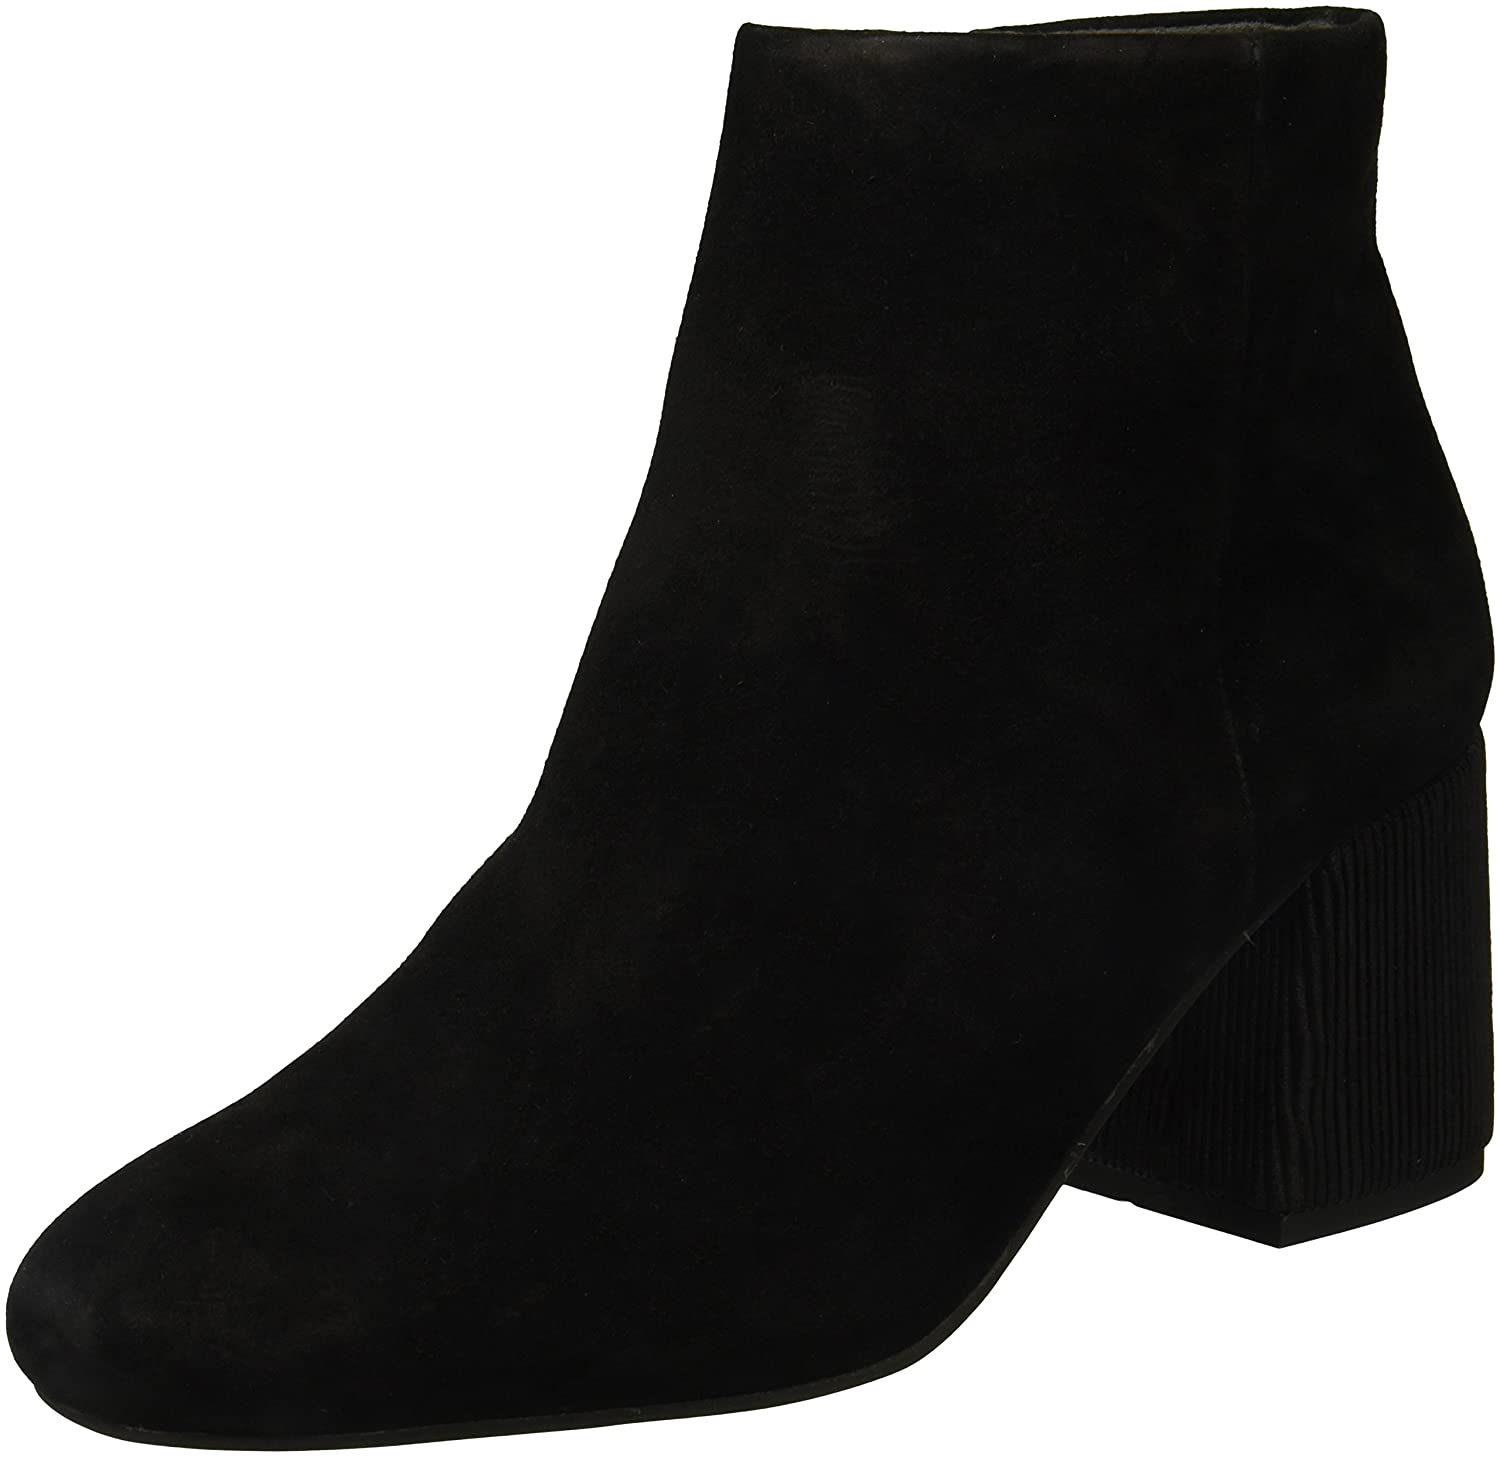 Seychelles Women's 8 Audition Ankle Boot B06XDZKL4L 8 Women's B(M) US|Black 2e409a